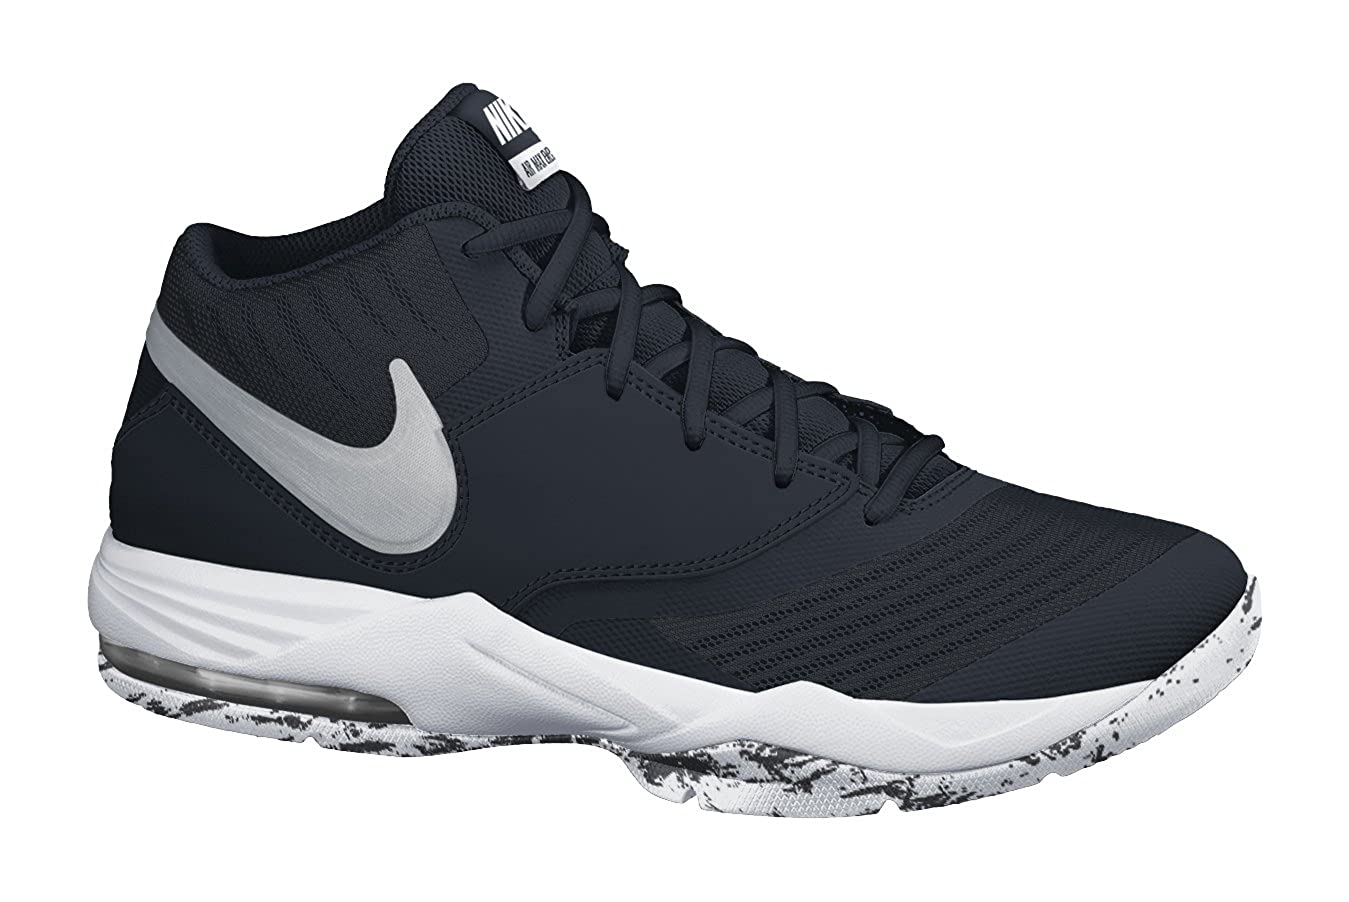 available top fashion good selling Buy Nike Men's Air Max Emergent Black, Mtllc Slvr, White and ...